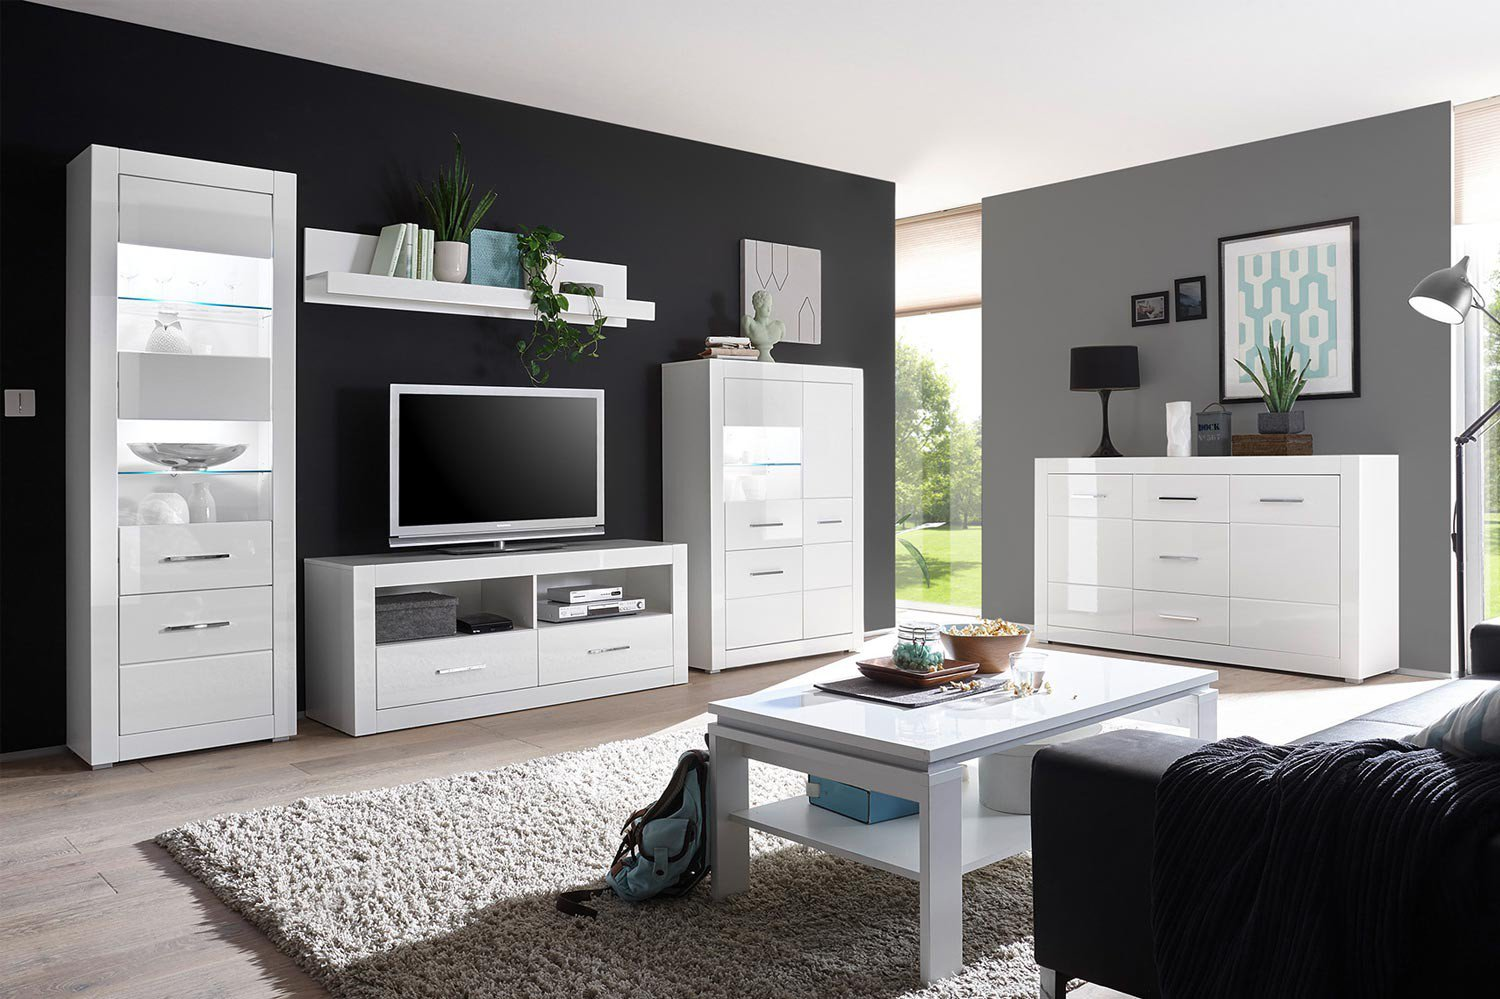 imv steinheim wohnwand bianco wei hochglanz m bel letz ihr online shop. Black Bedroom Furniture Sets. Home Design Ideas